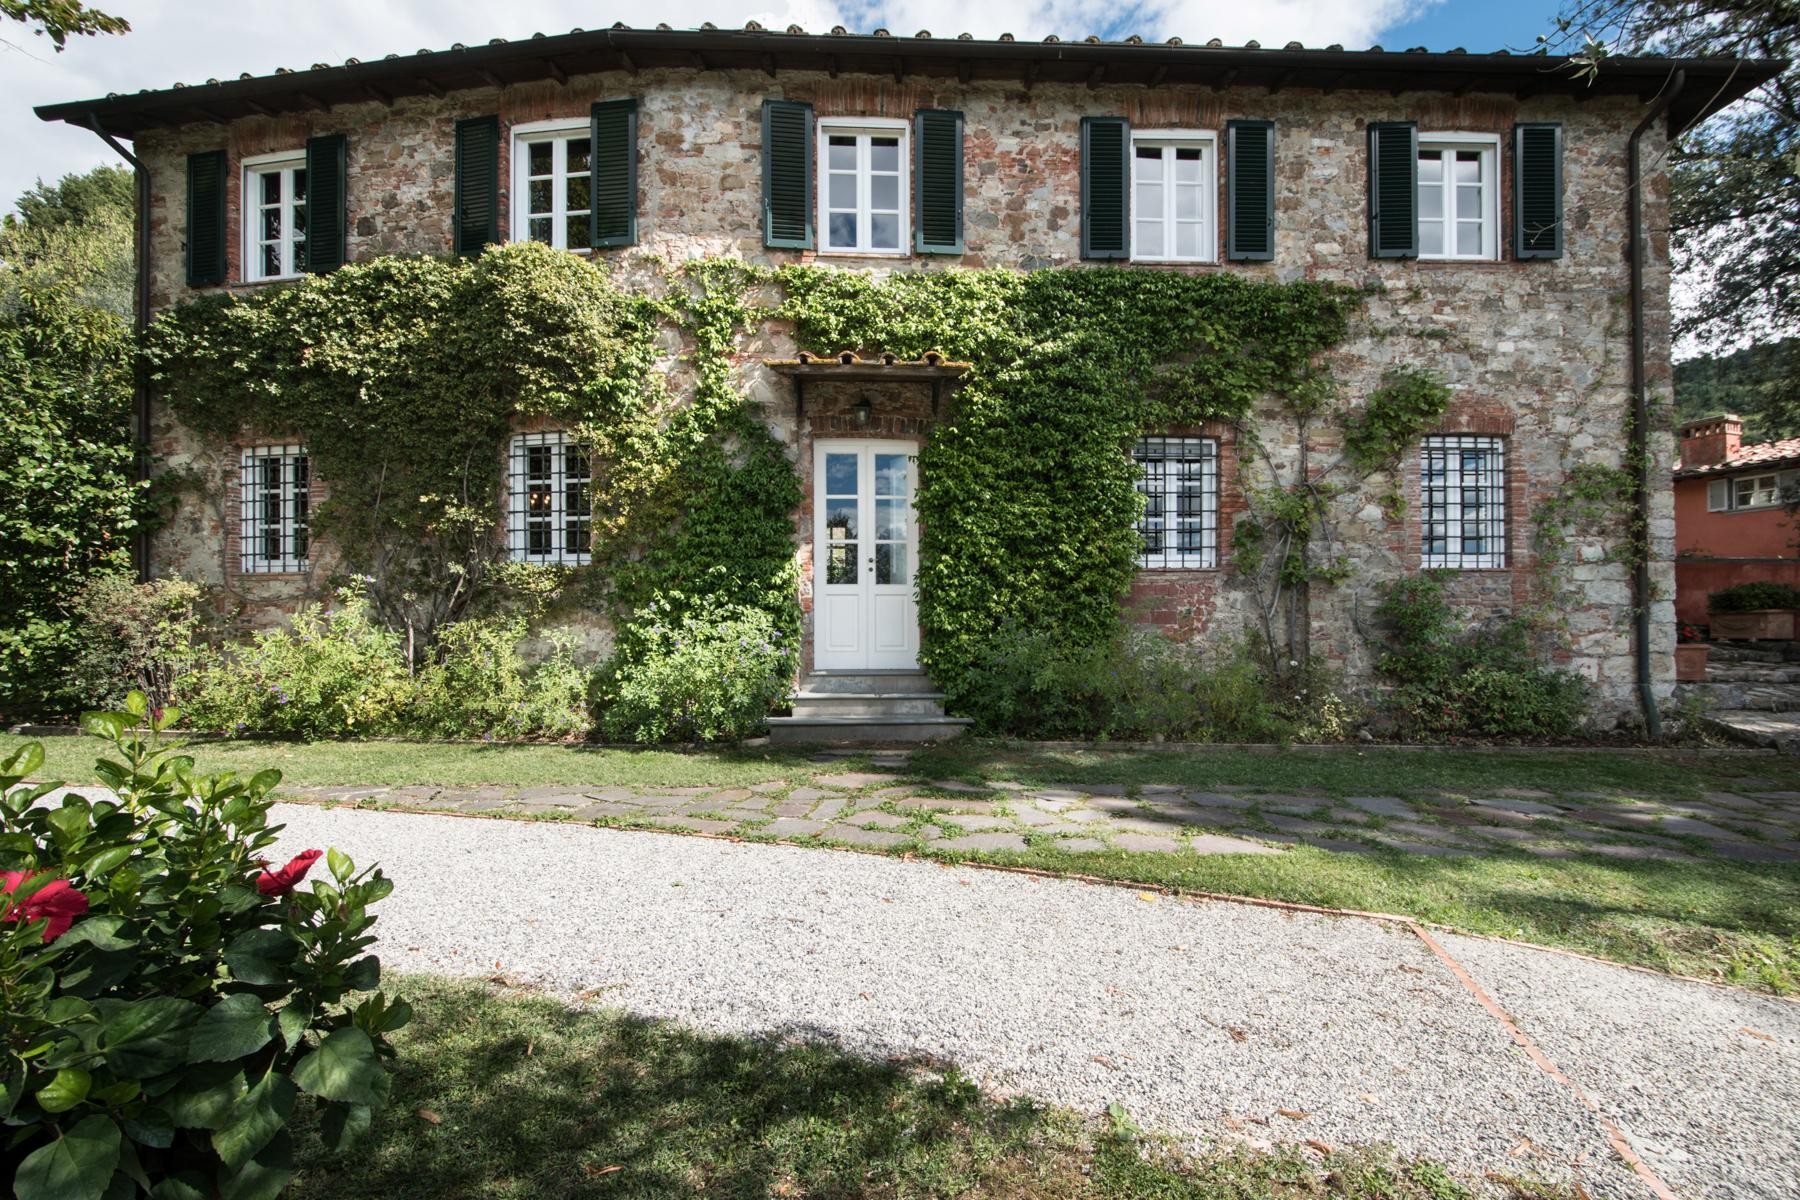 Marvelous villa in the countryside of Lucca - 34